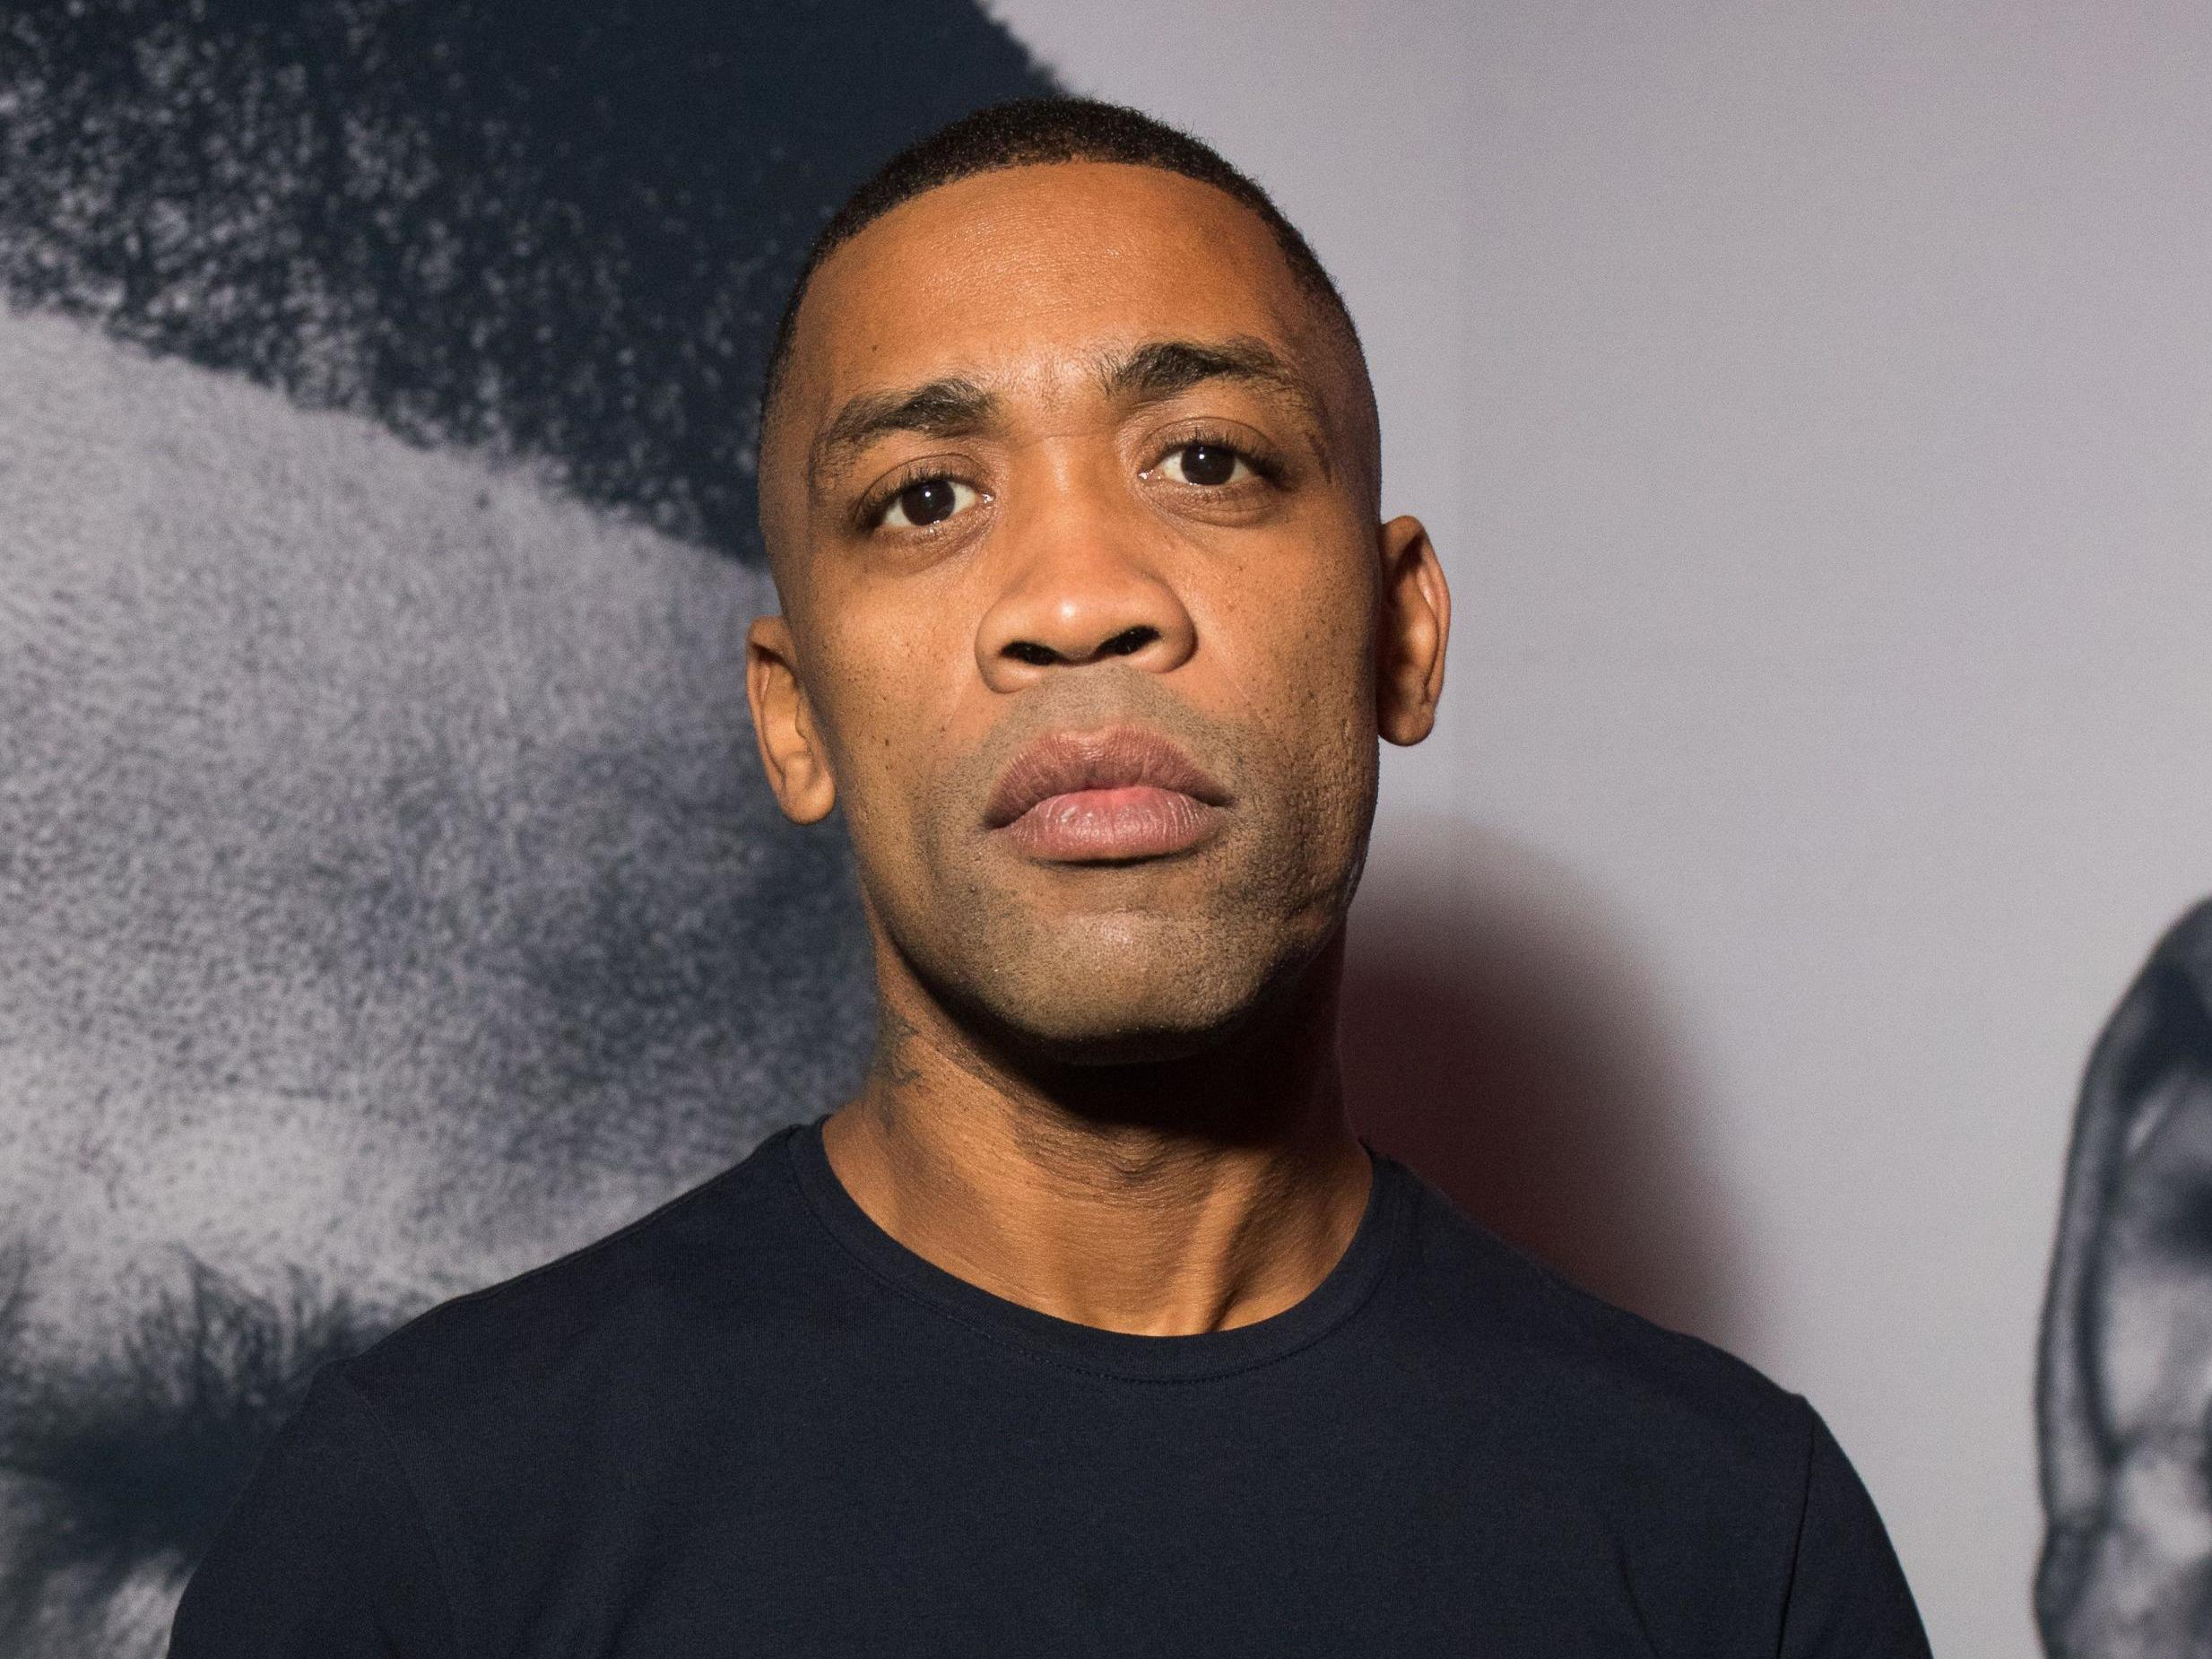 Wiley's MBE is under review after antisemitic rant, Cabinet Office confirms